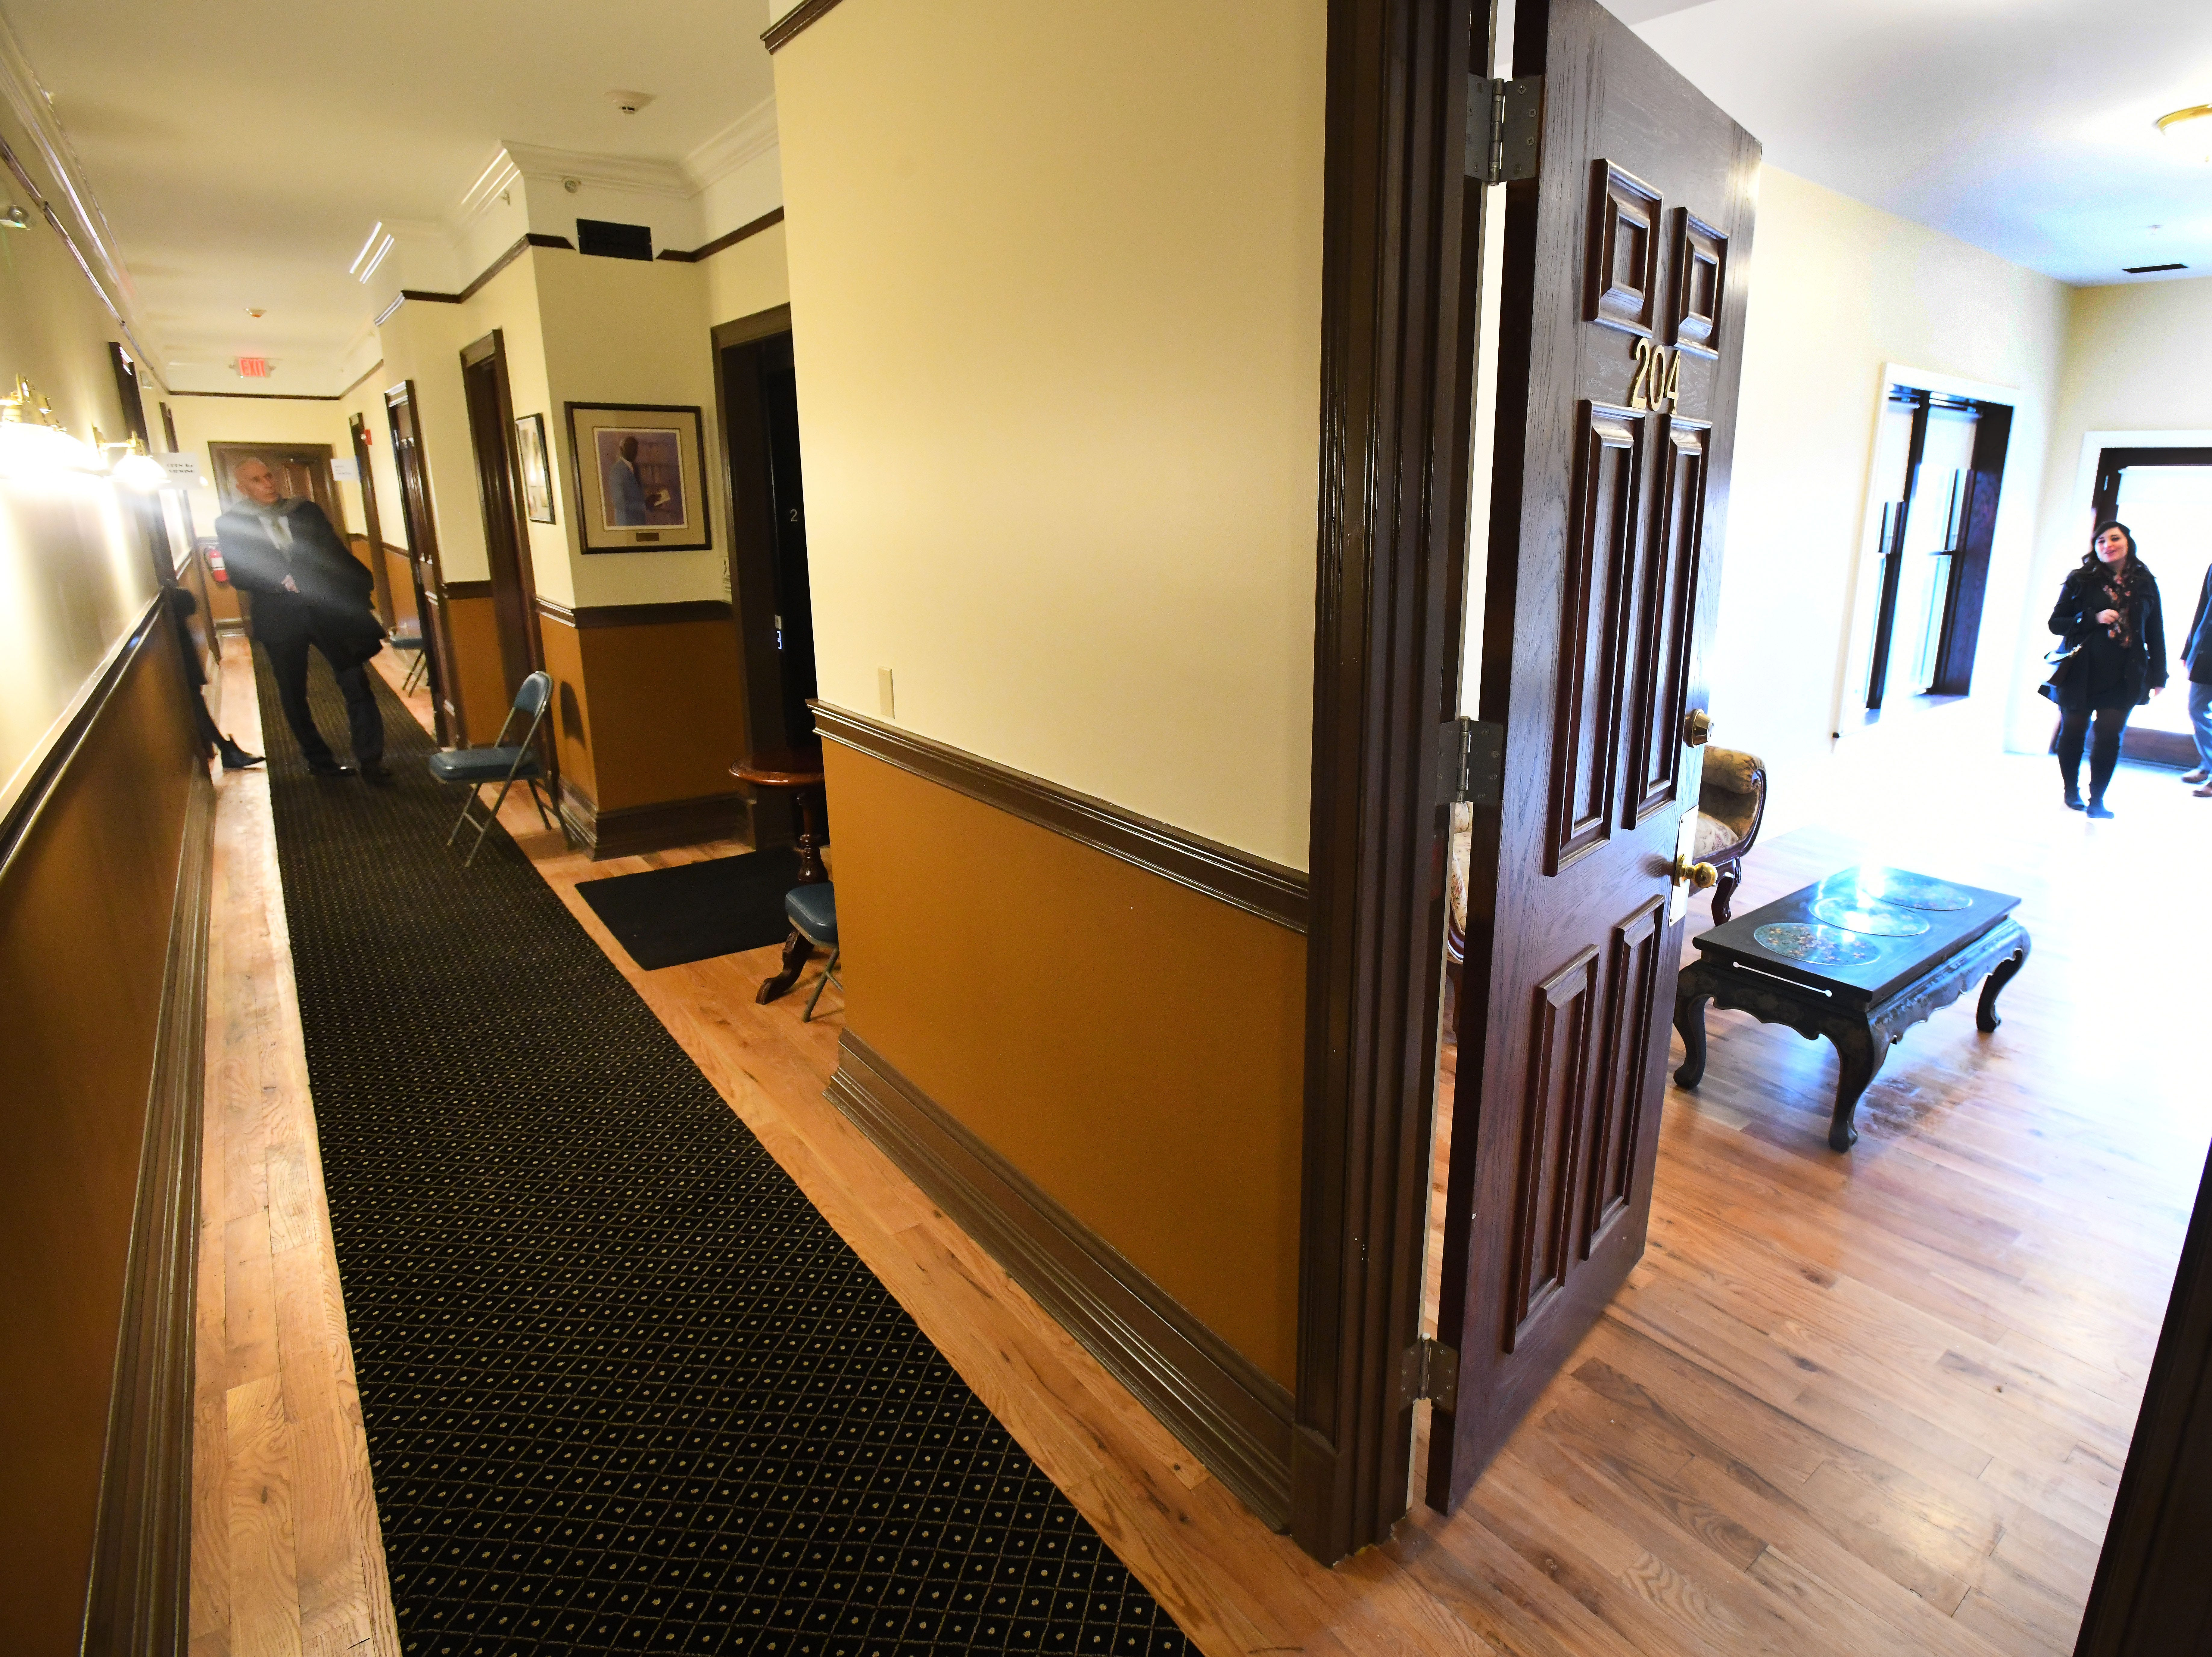 Hallway and 2nd floor apartment at the historic Scott Mansion.